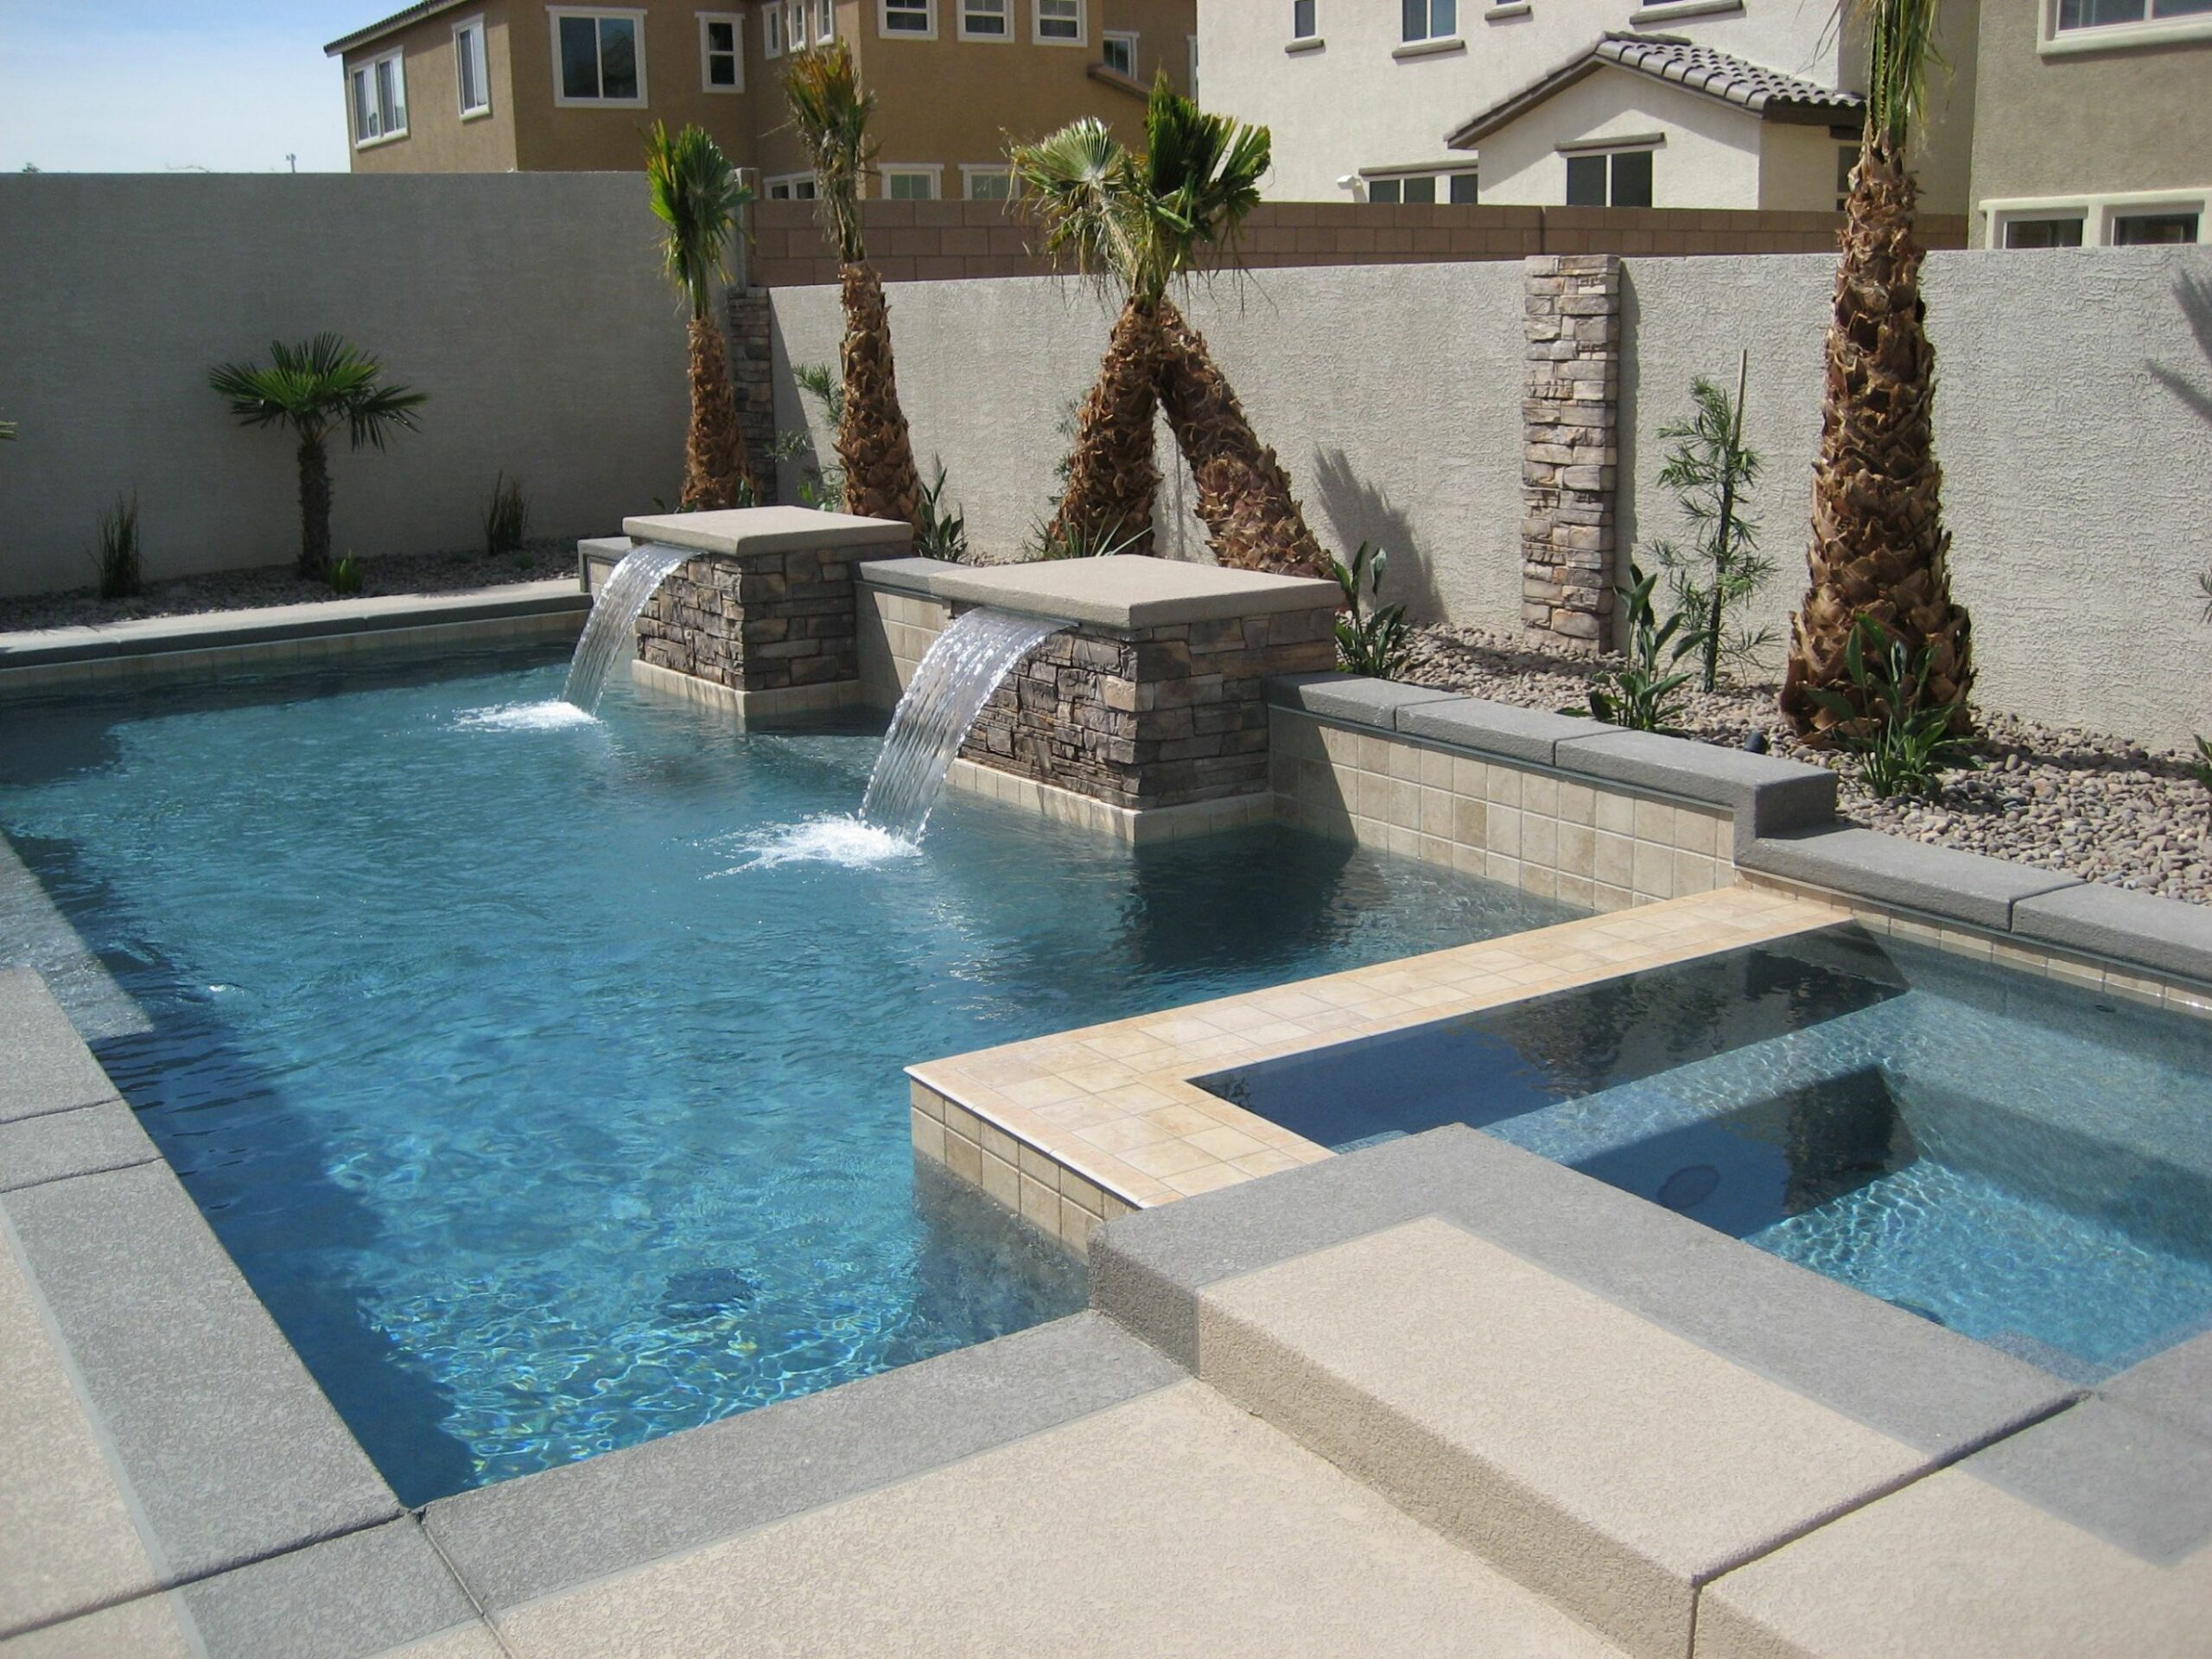 Geometric design pool and spa with water features (With images ..